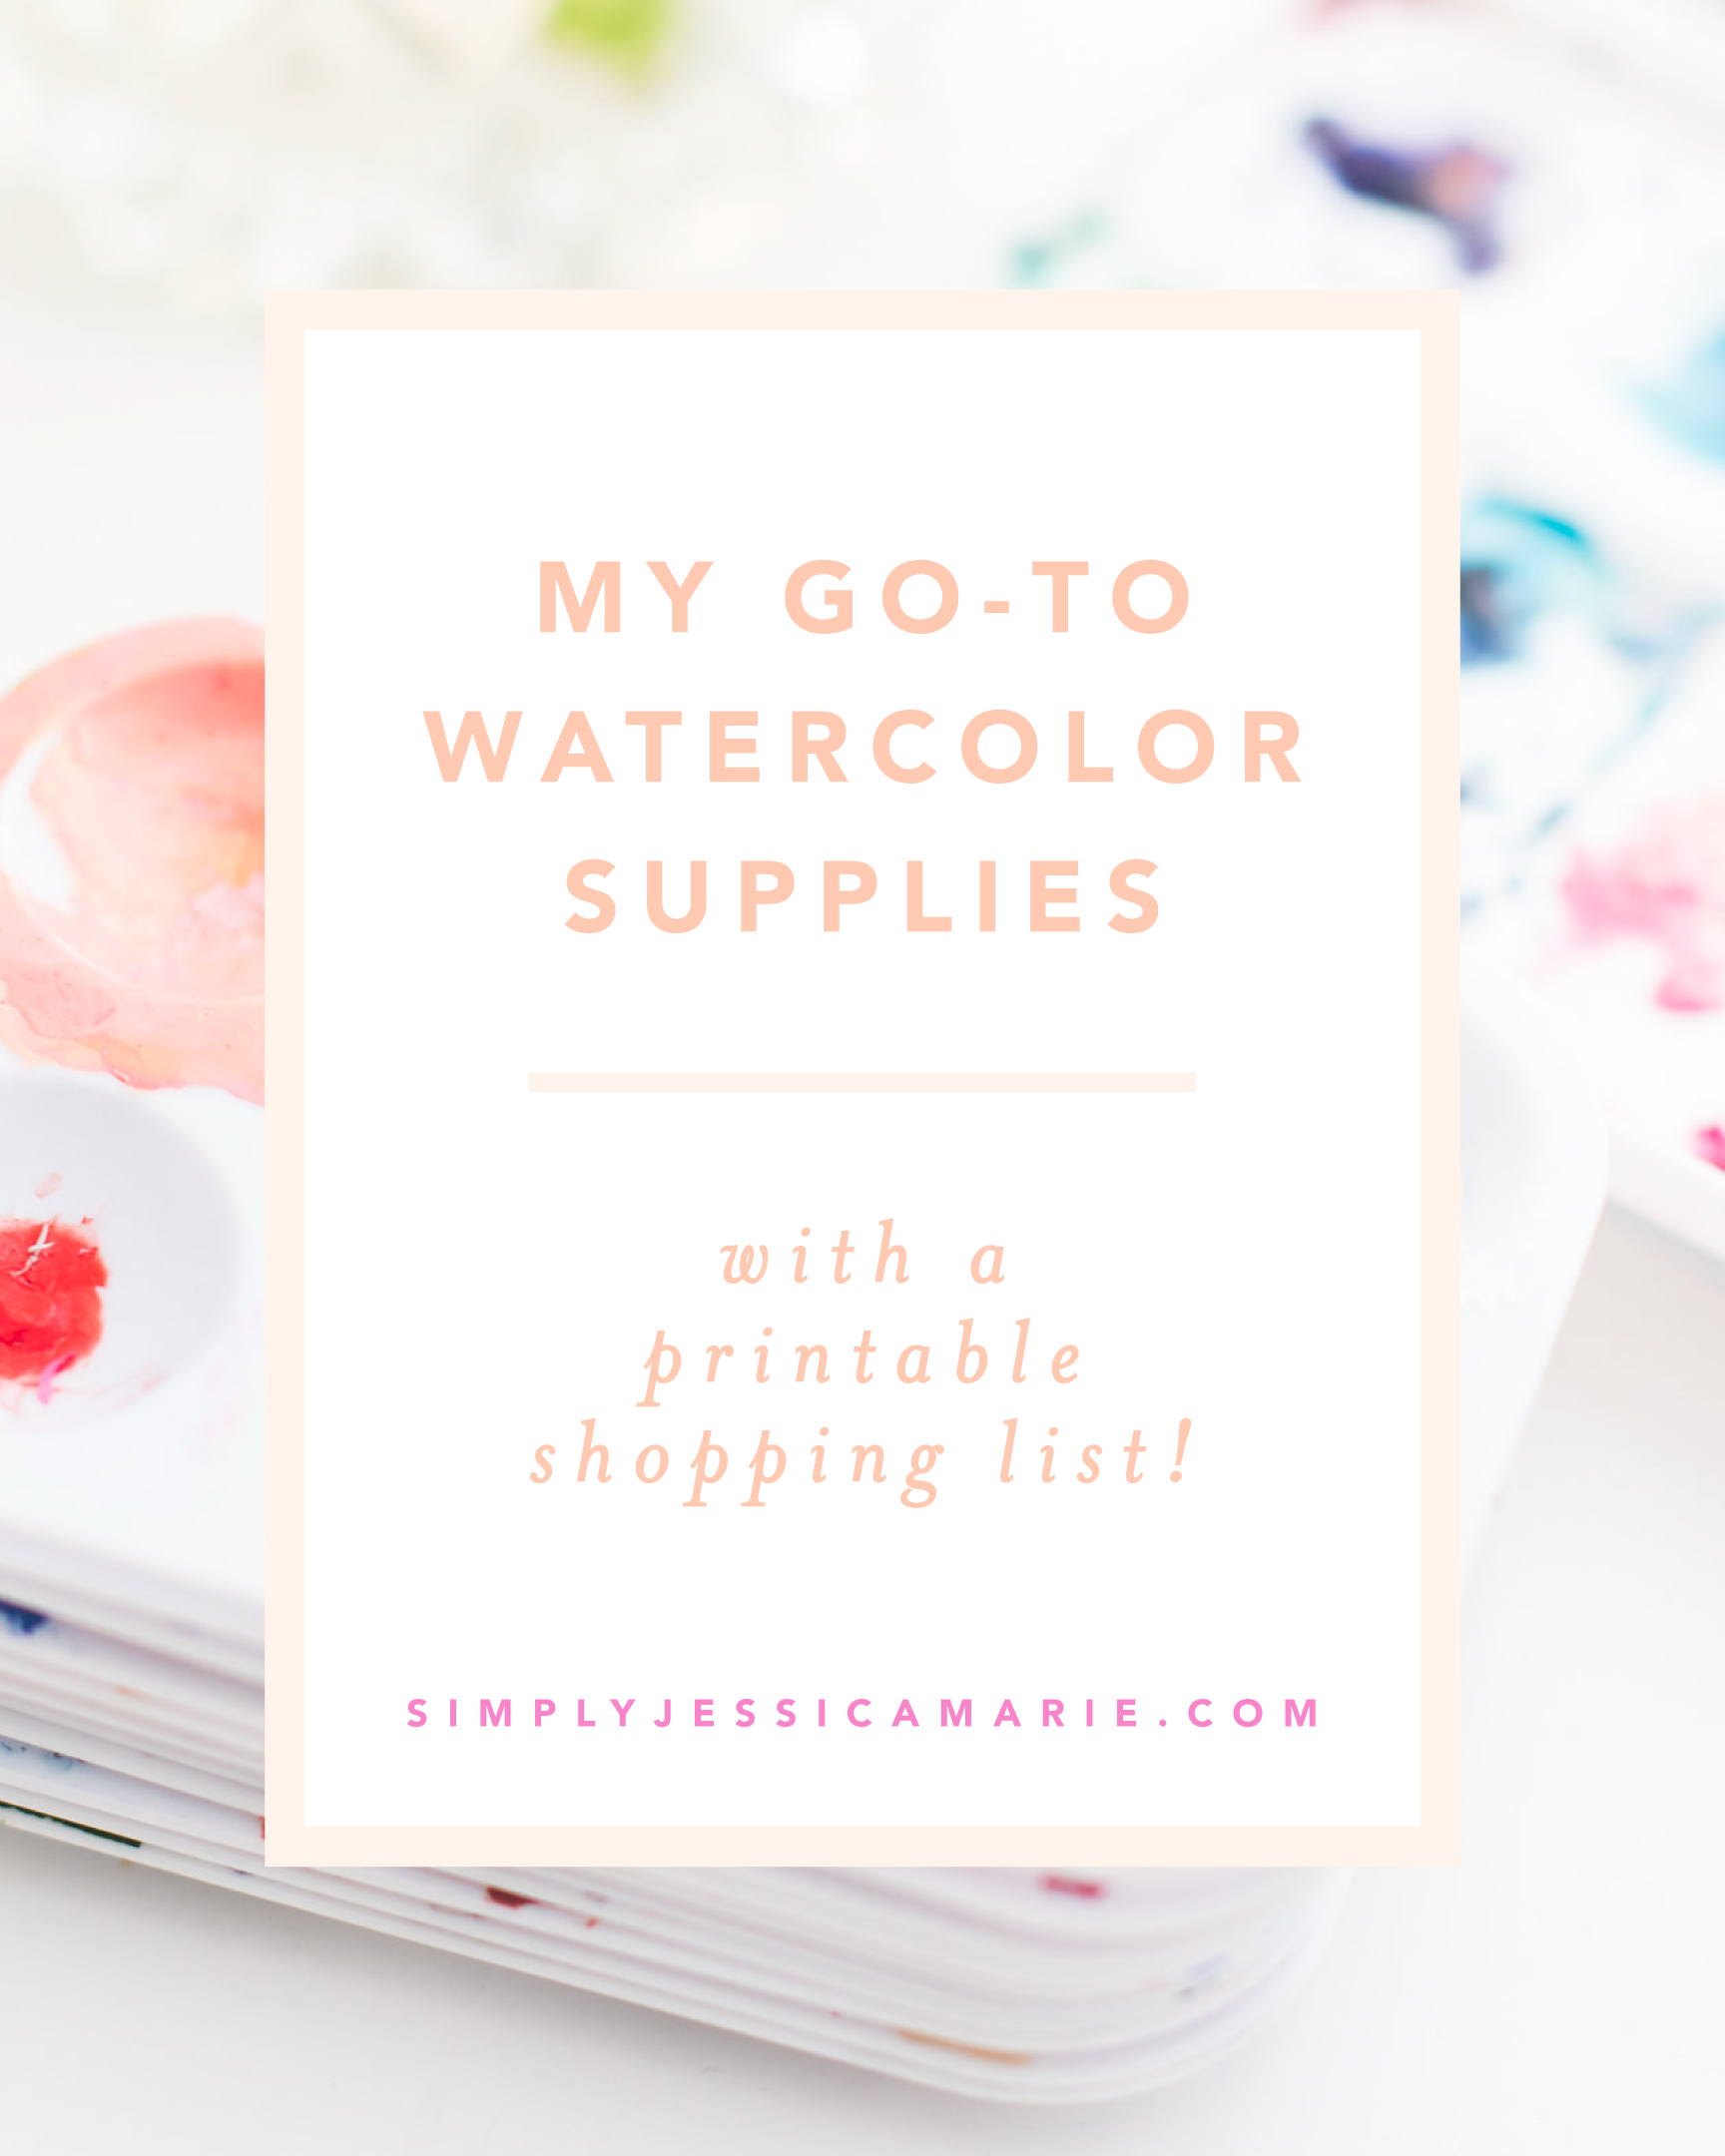 My go-to watercolor supplies with a printable shopping list! Art supplies recommendations by Simply Jessica Marie | Photo by Callie Lindsey